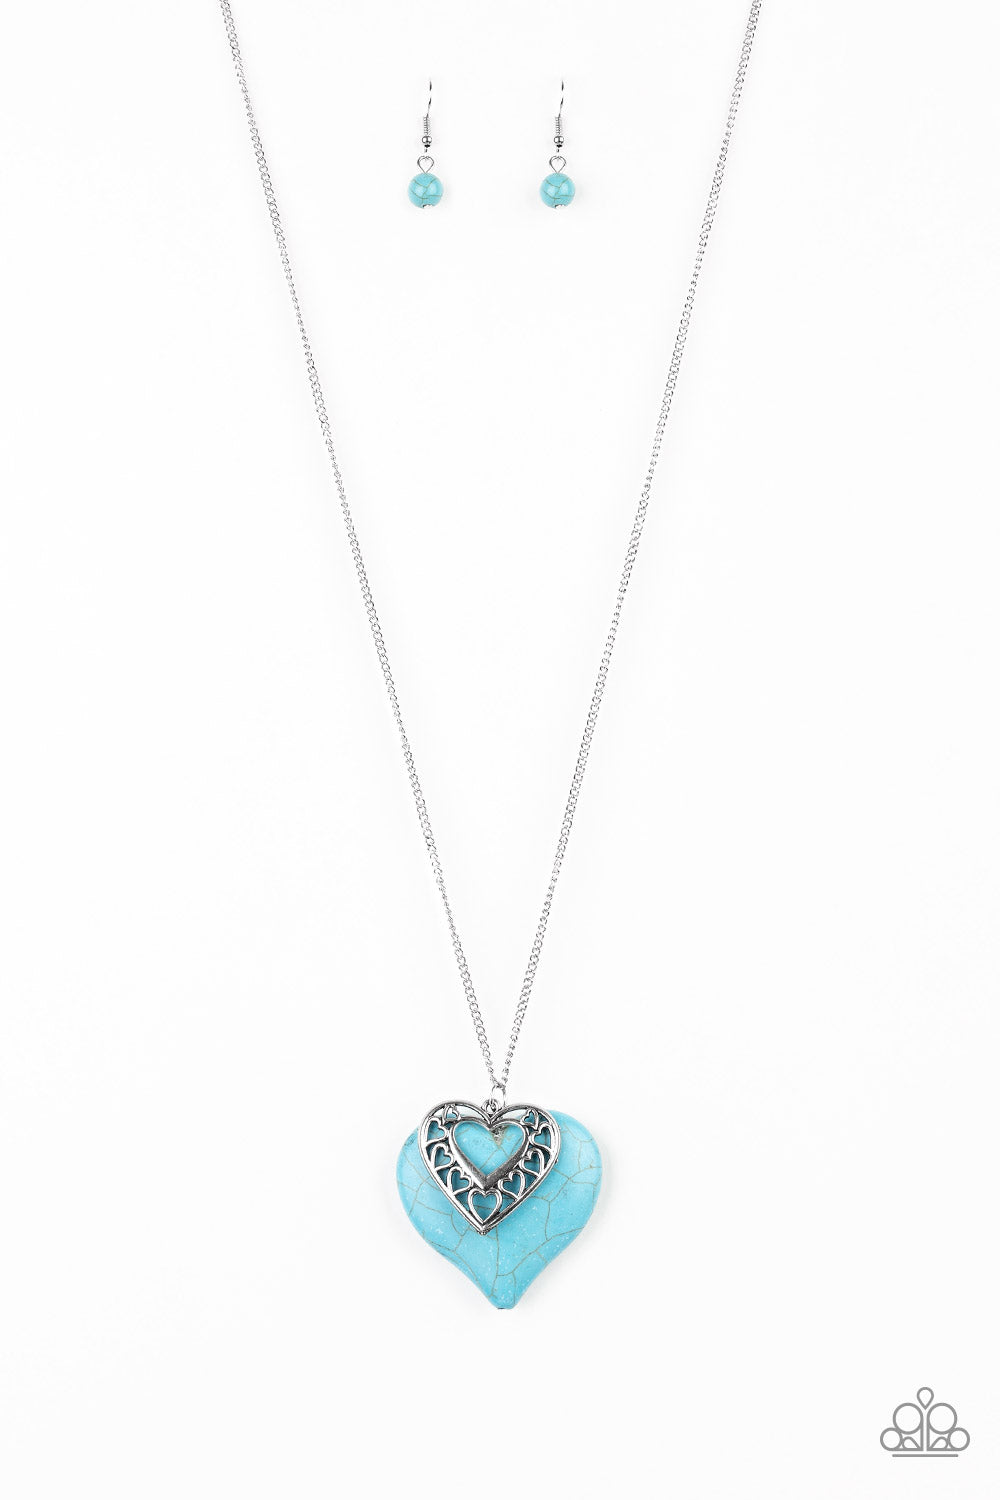 Southern Heart Necklace